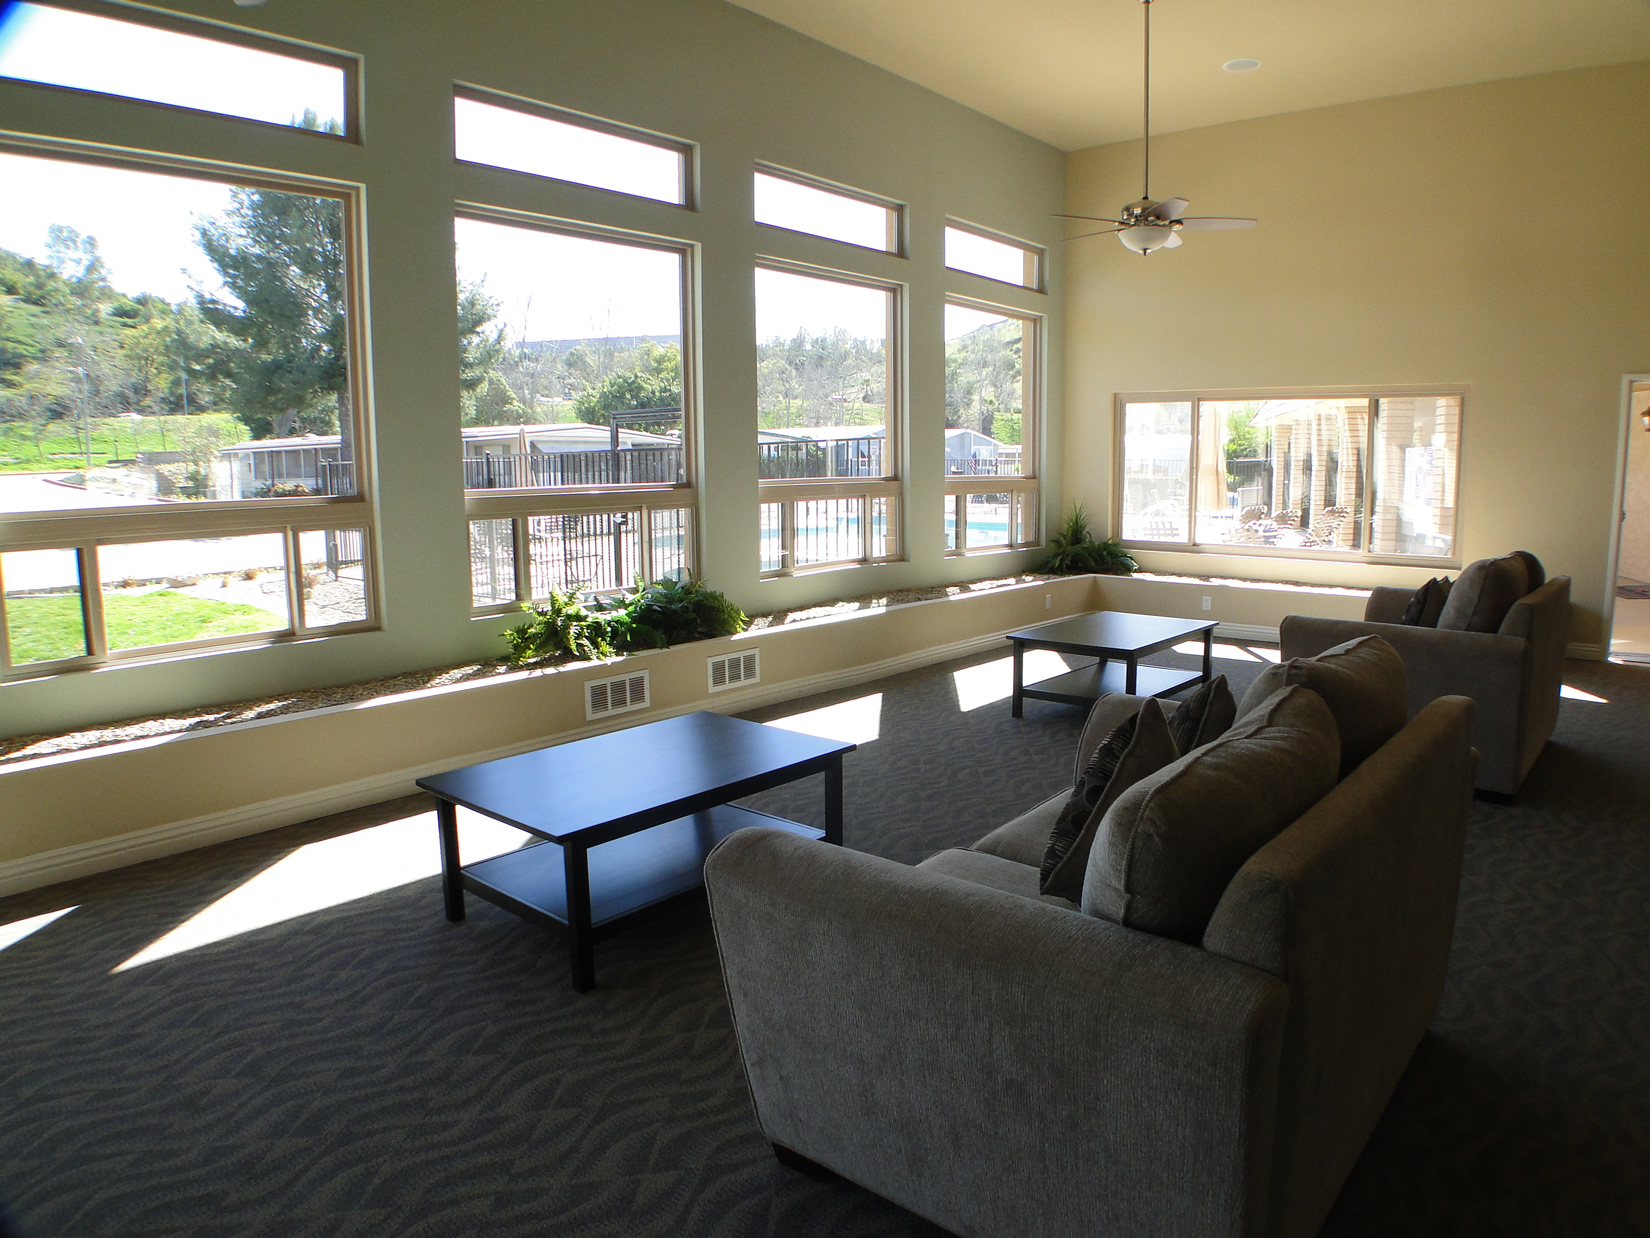 Community poway royal estates tlc manufactured homes for Www home interior